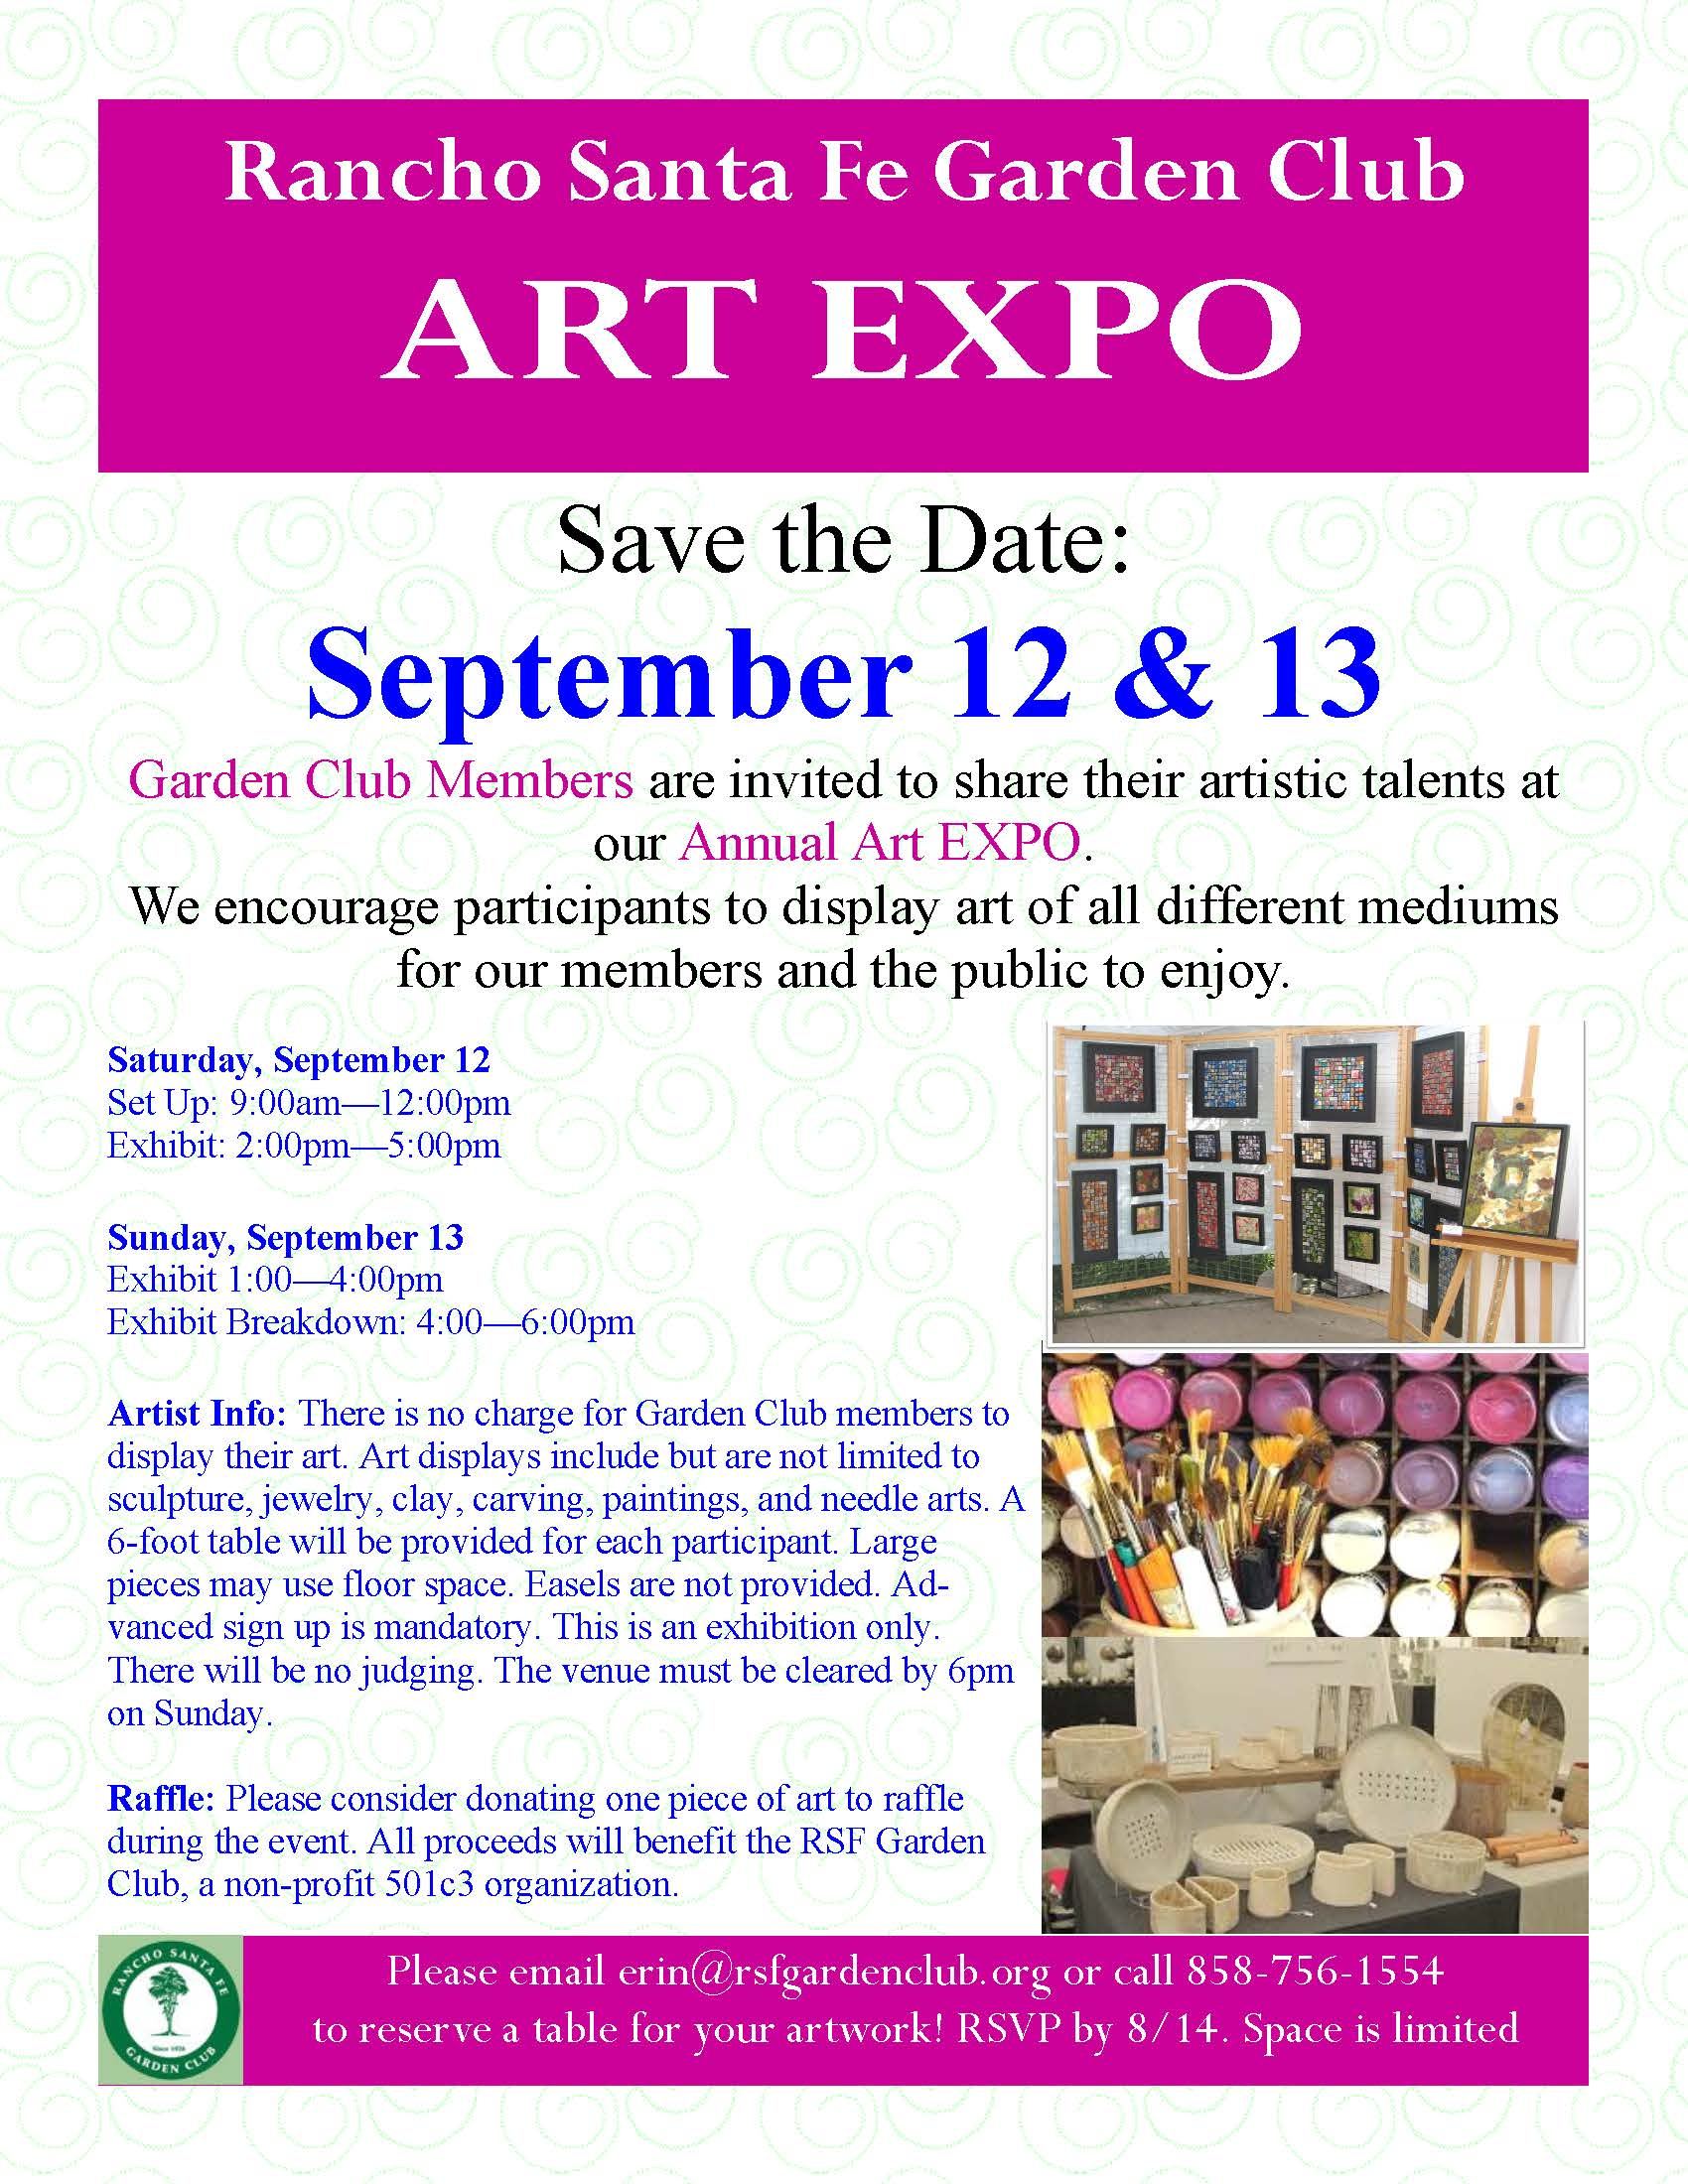 Art-Expo-Save-the-Date.jpg